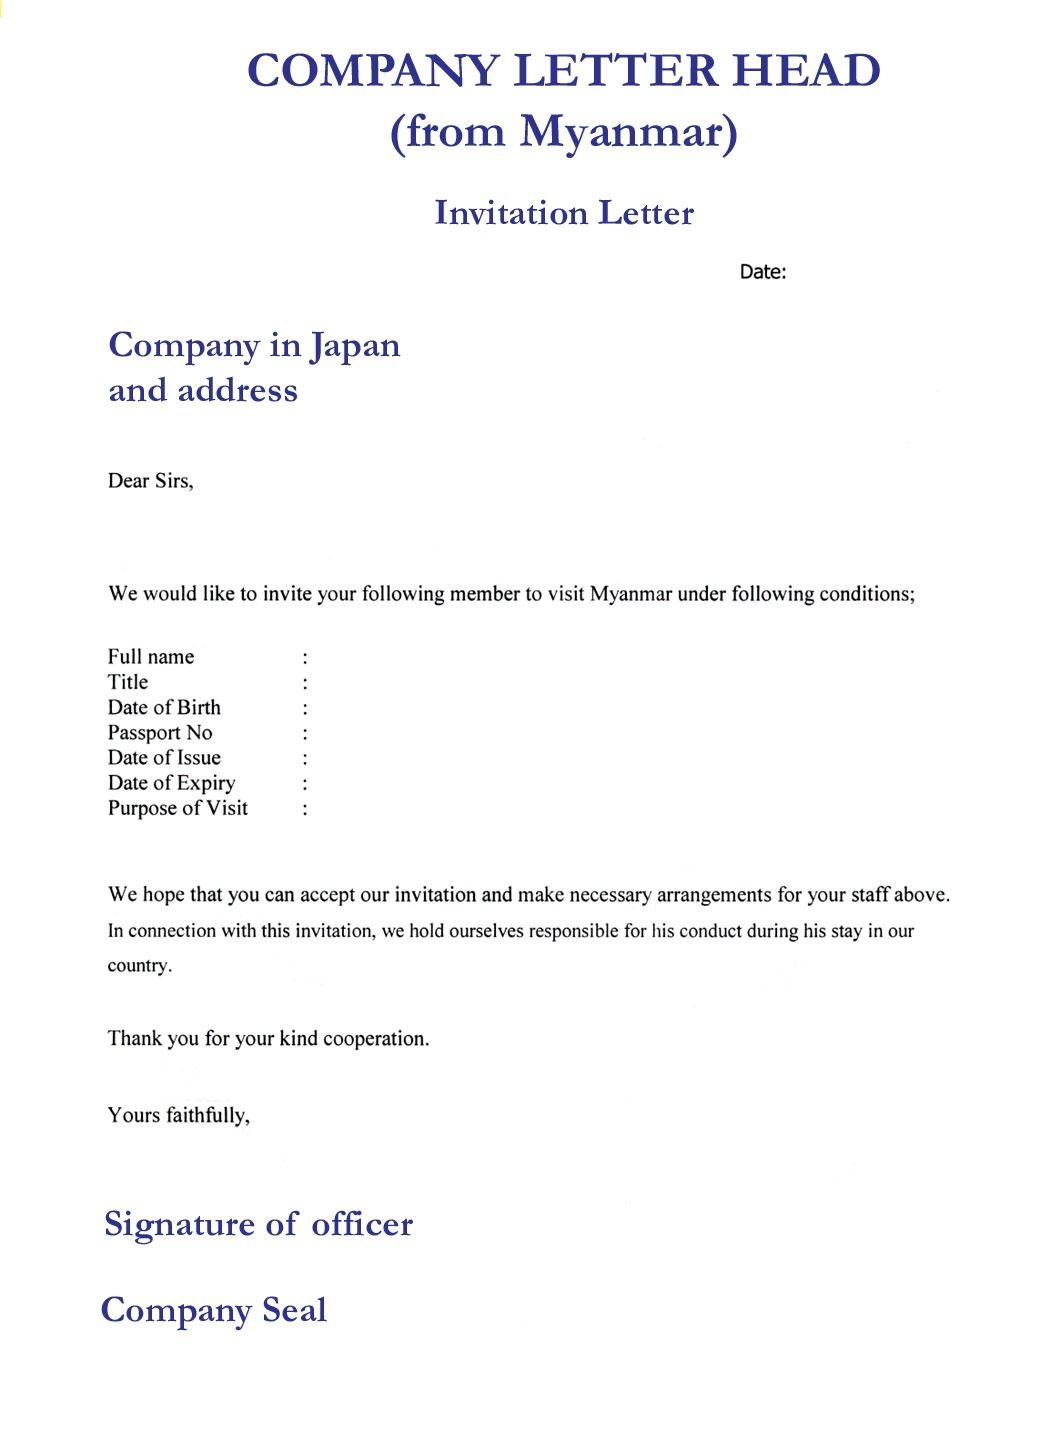 Business visa invitation letter template format for meeting format business visa invitation letter template format for meeting flashek Gallery